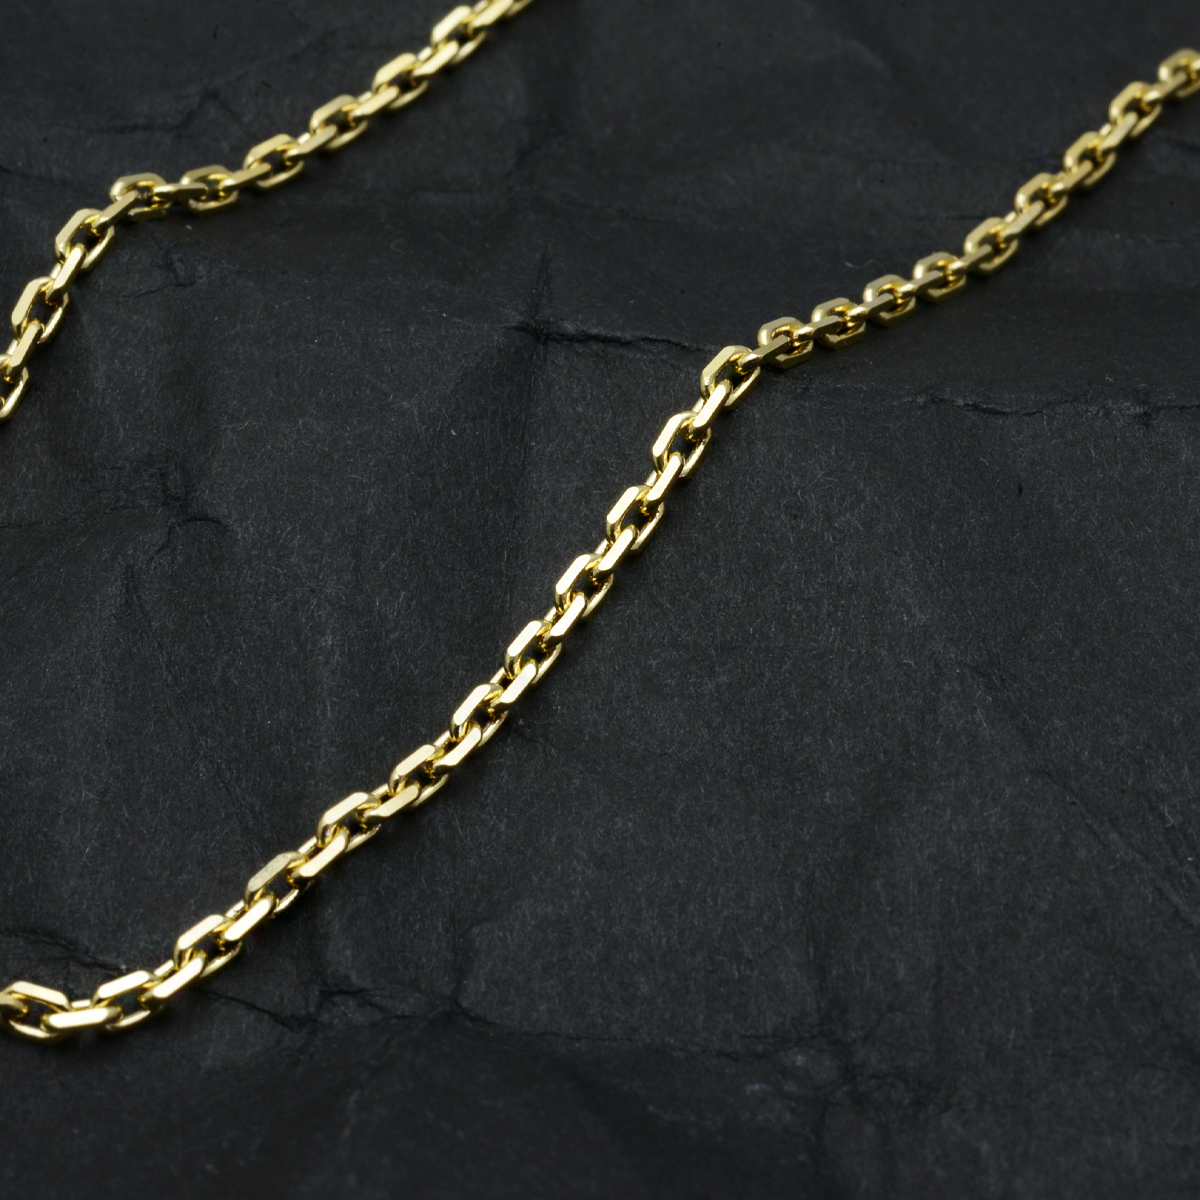 k18ネックレス K18 イエローゴールド メンズ 男性 カットアズキチェーン 幅1.7mm チェーン 50cm/ プレゼント ギフト gold necklace ach1661c50